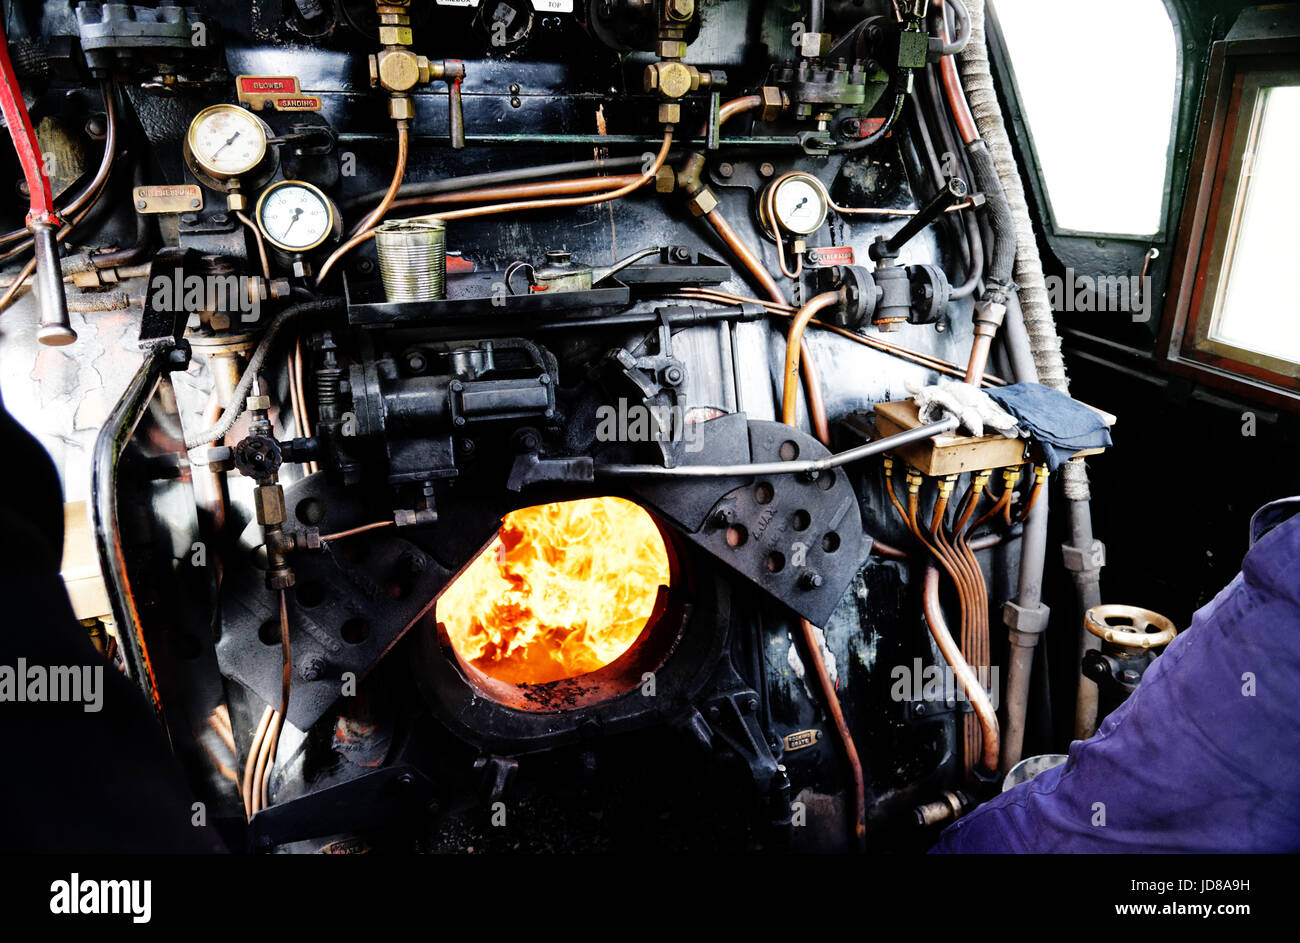 The fire burning in the boiler of the Battle of Britain class locomotive Manston 34070 - Stock Image